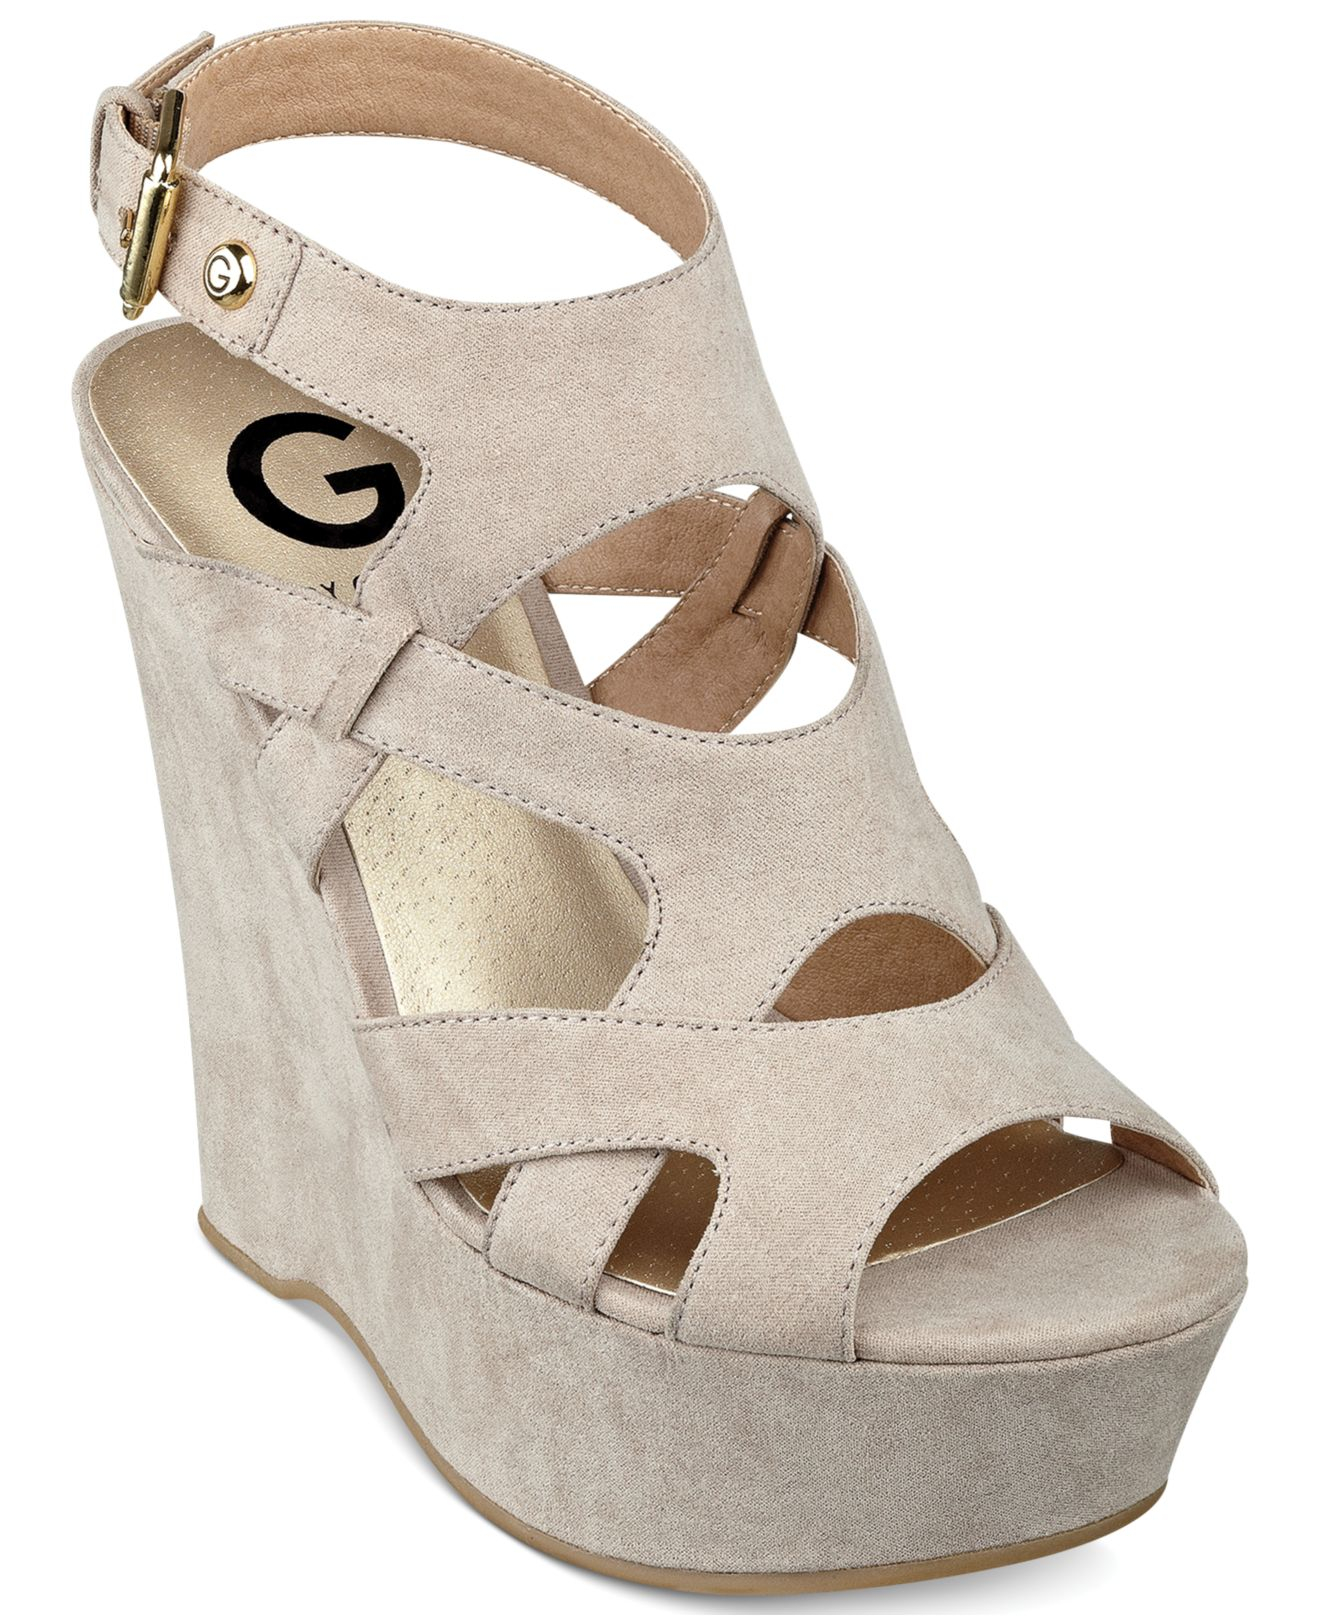 3e0a1a2b6d87 Lyst - G by Guess Hizza Platform Wedge Sandals in Natural